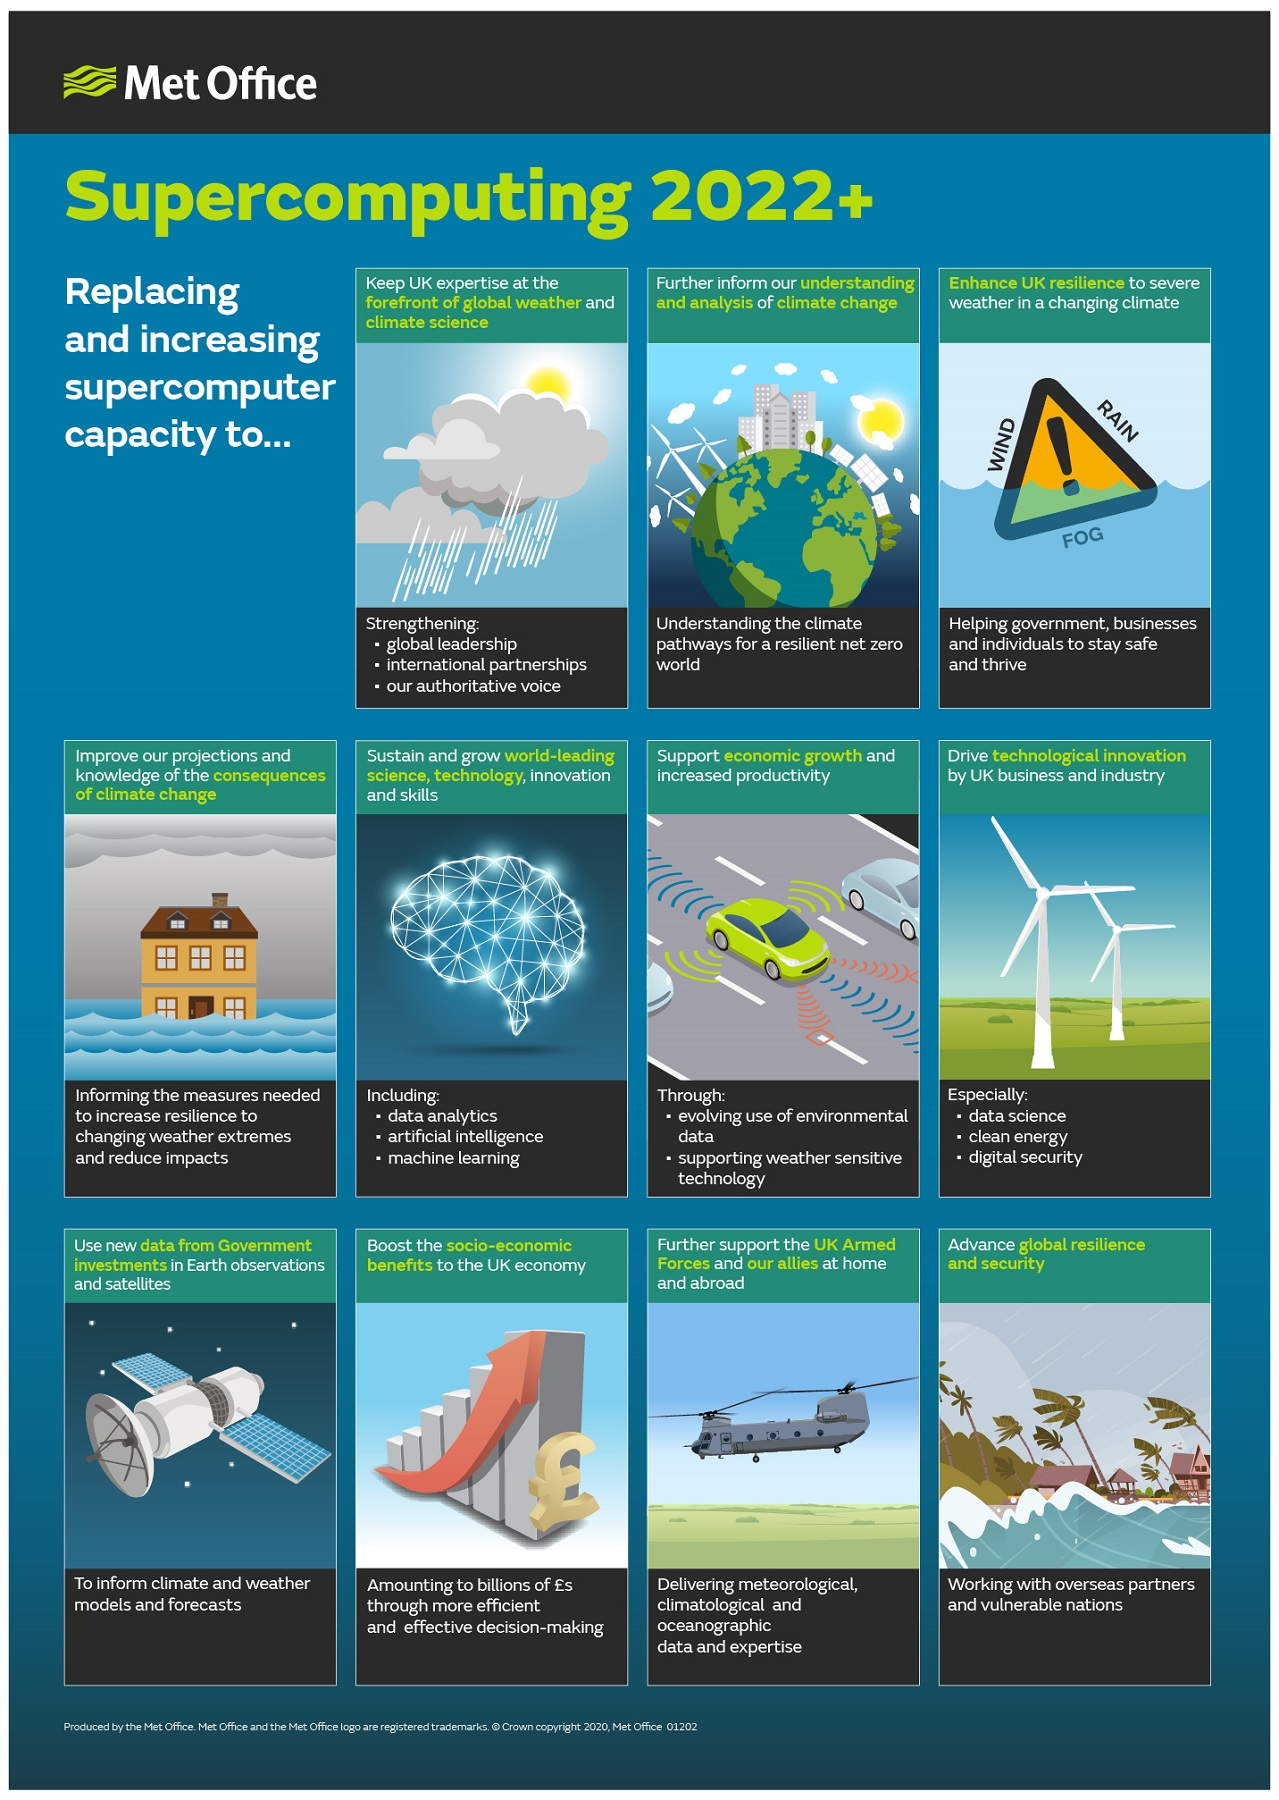 Met Office supercomputer-benefits infographic